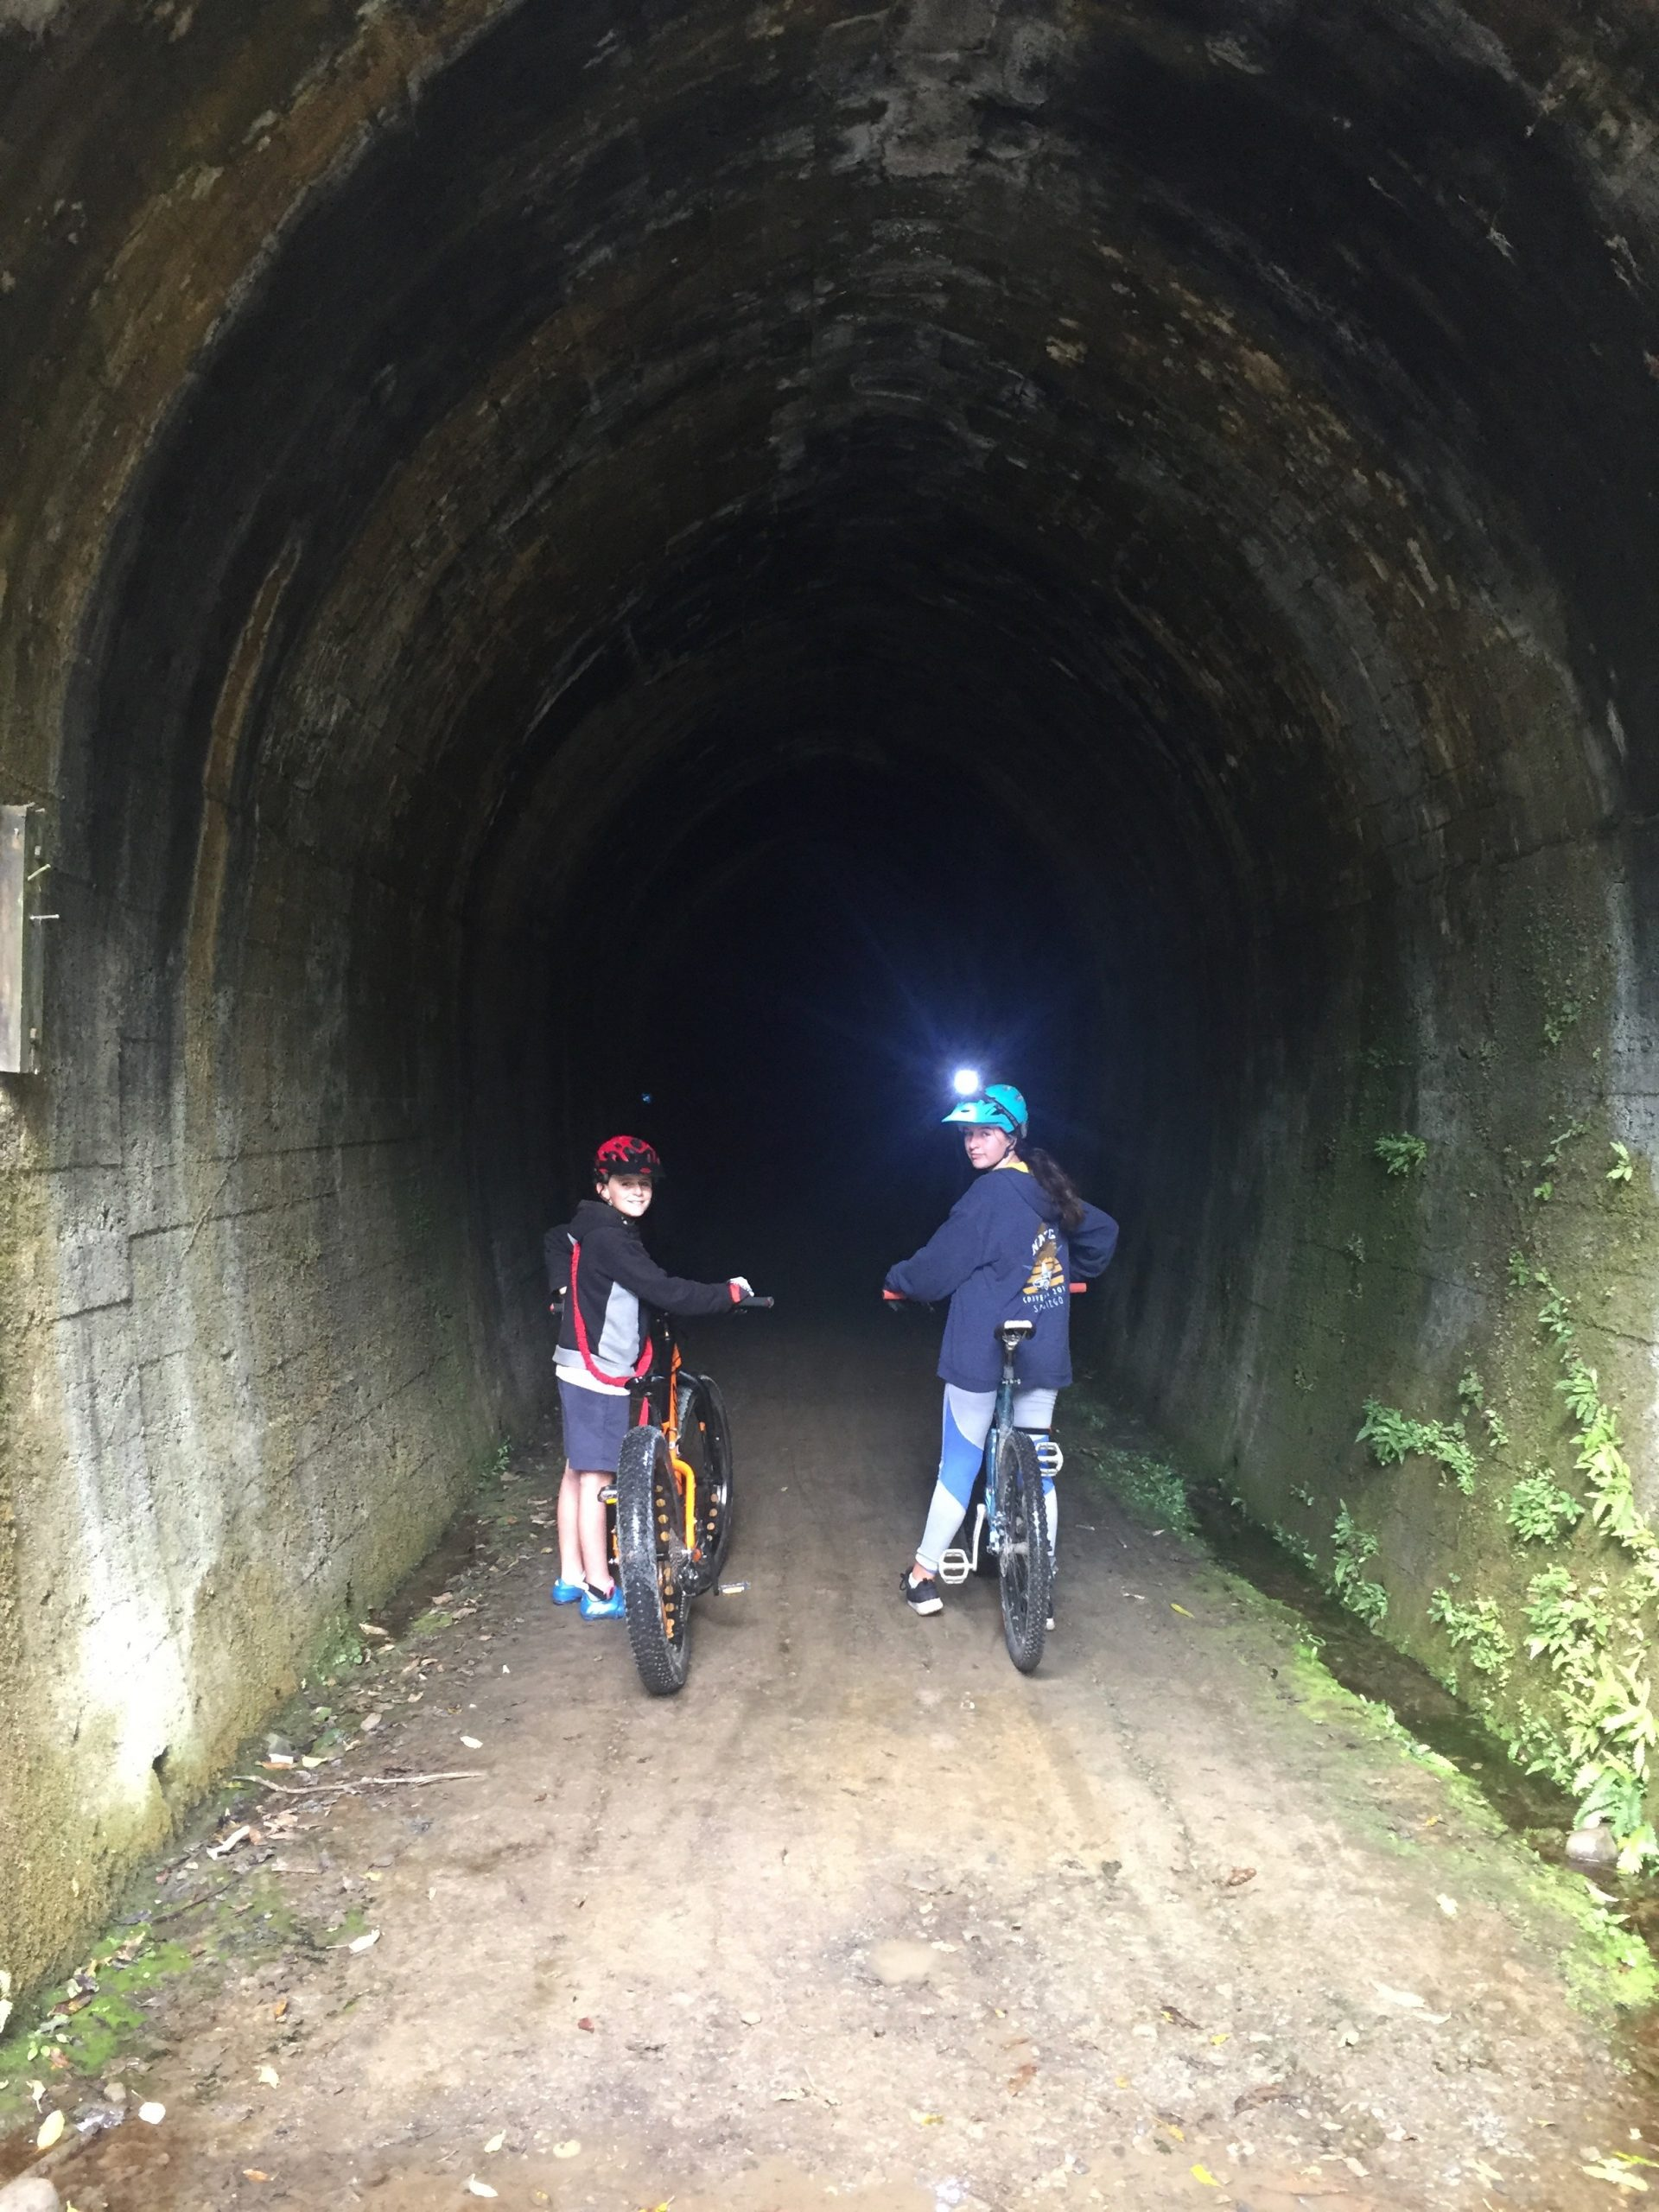 Using lights in Spooners Tunnel